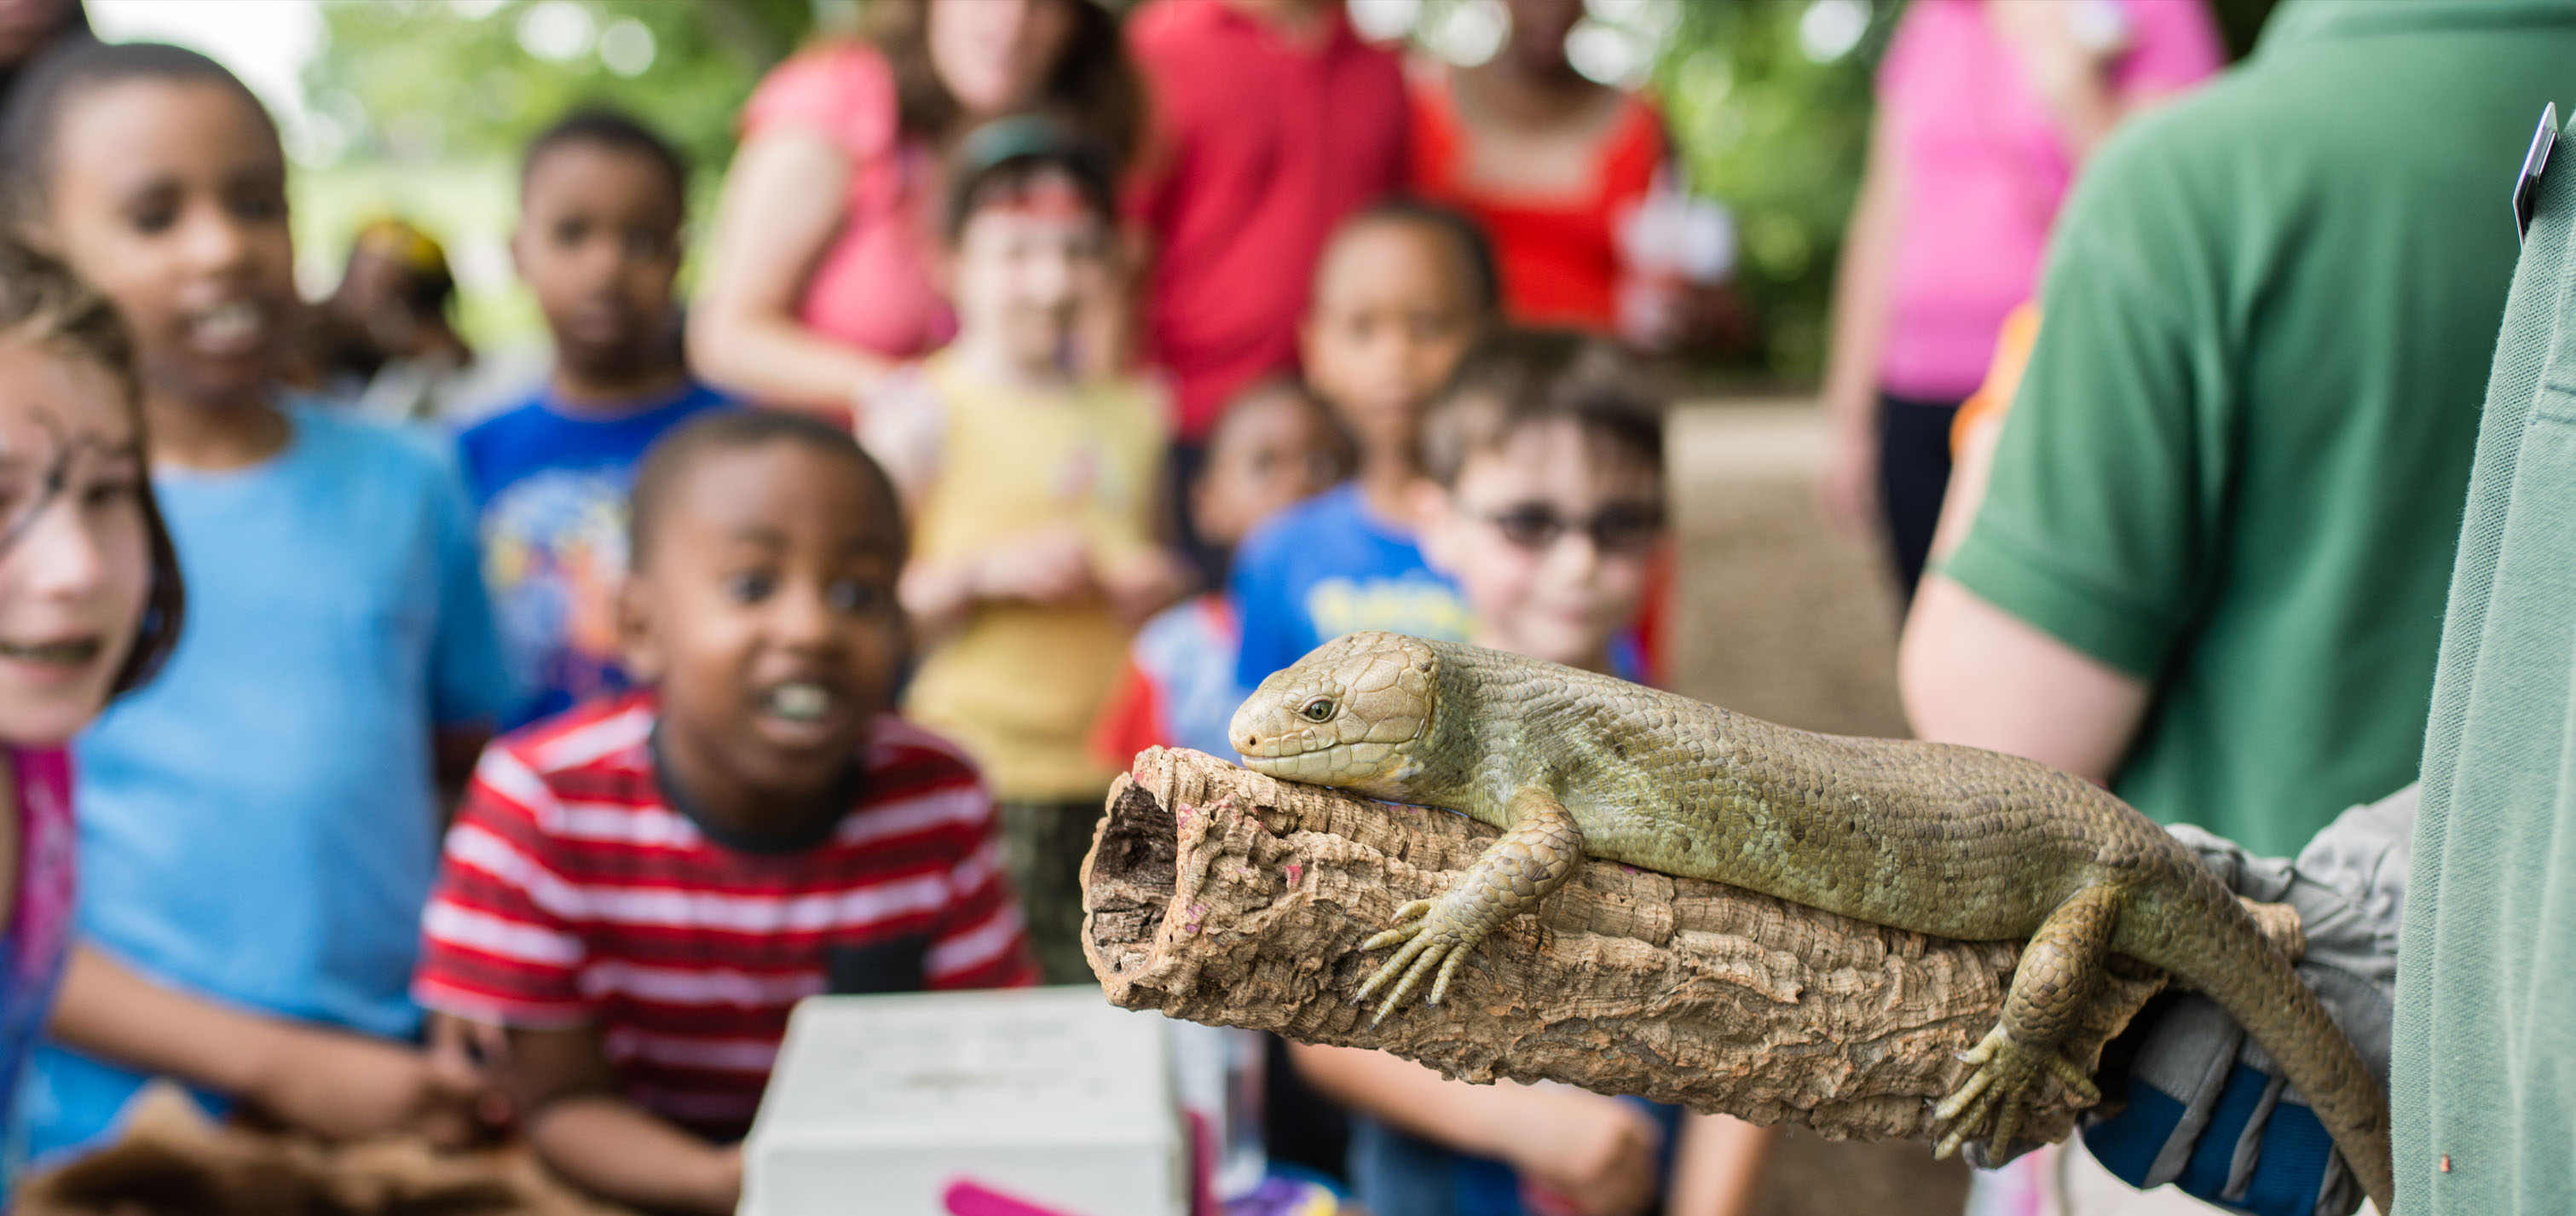 Brandywine Zoo conducting outreach programs at Alapocas Run State Park